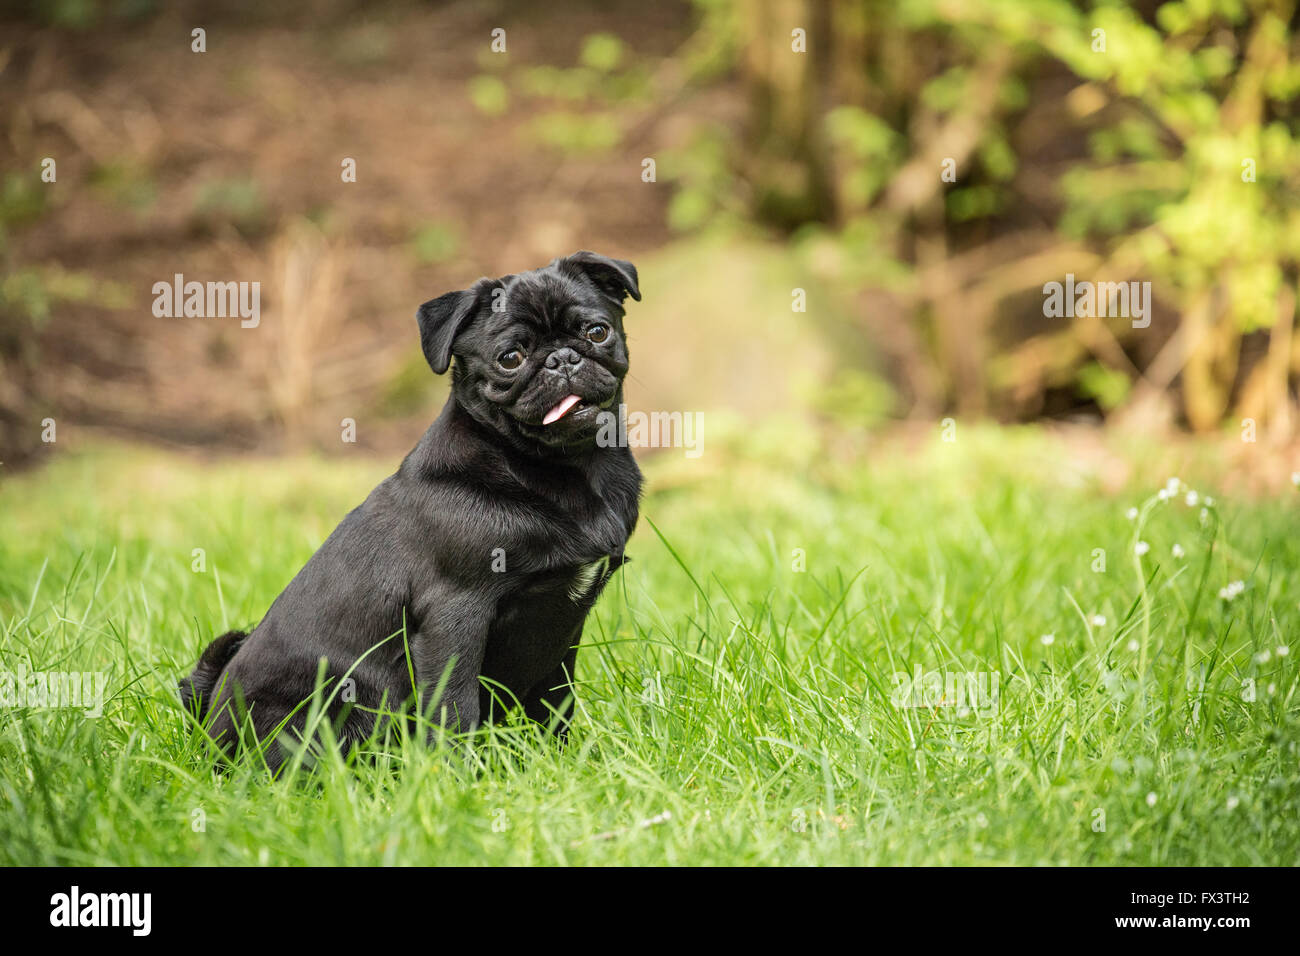 Kato, a black Pug puppy sitting in the grassy lawn in Issaquah, Washington, USA - Stock Image